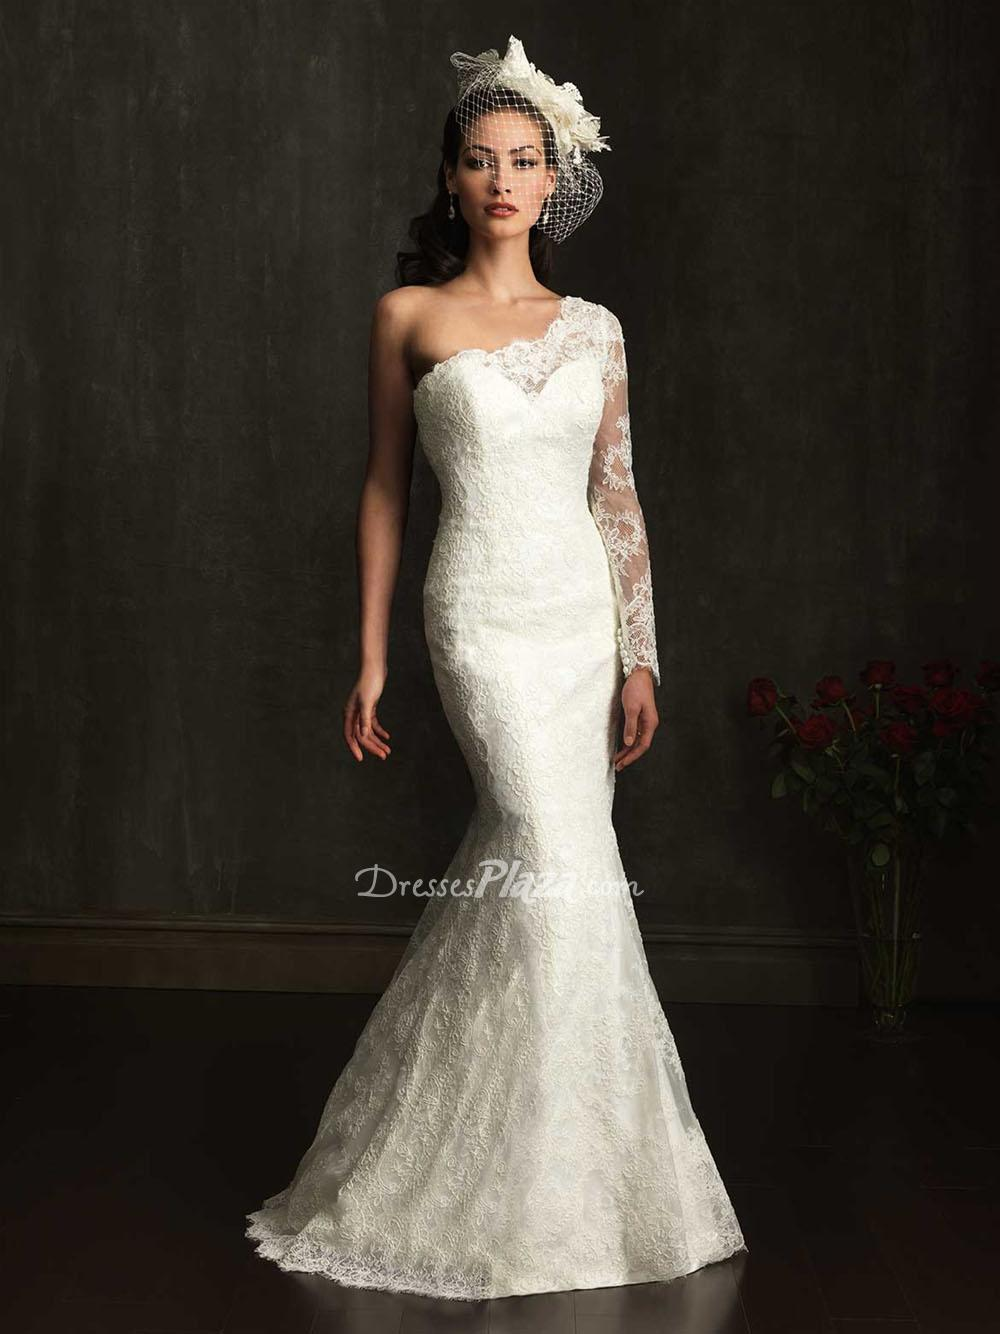 Form Fitting Wedding Dresses